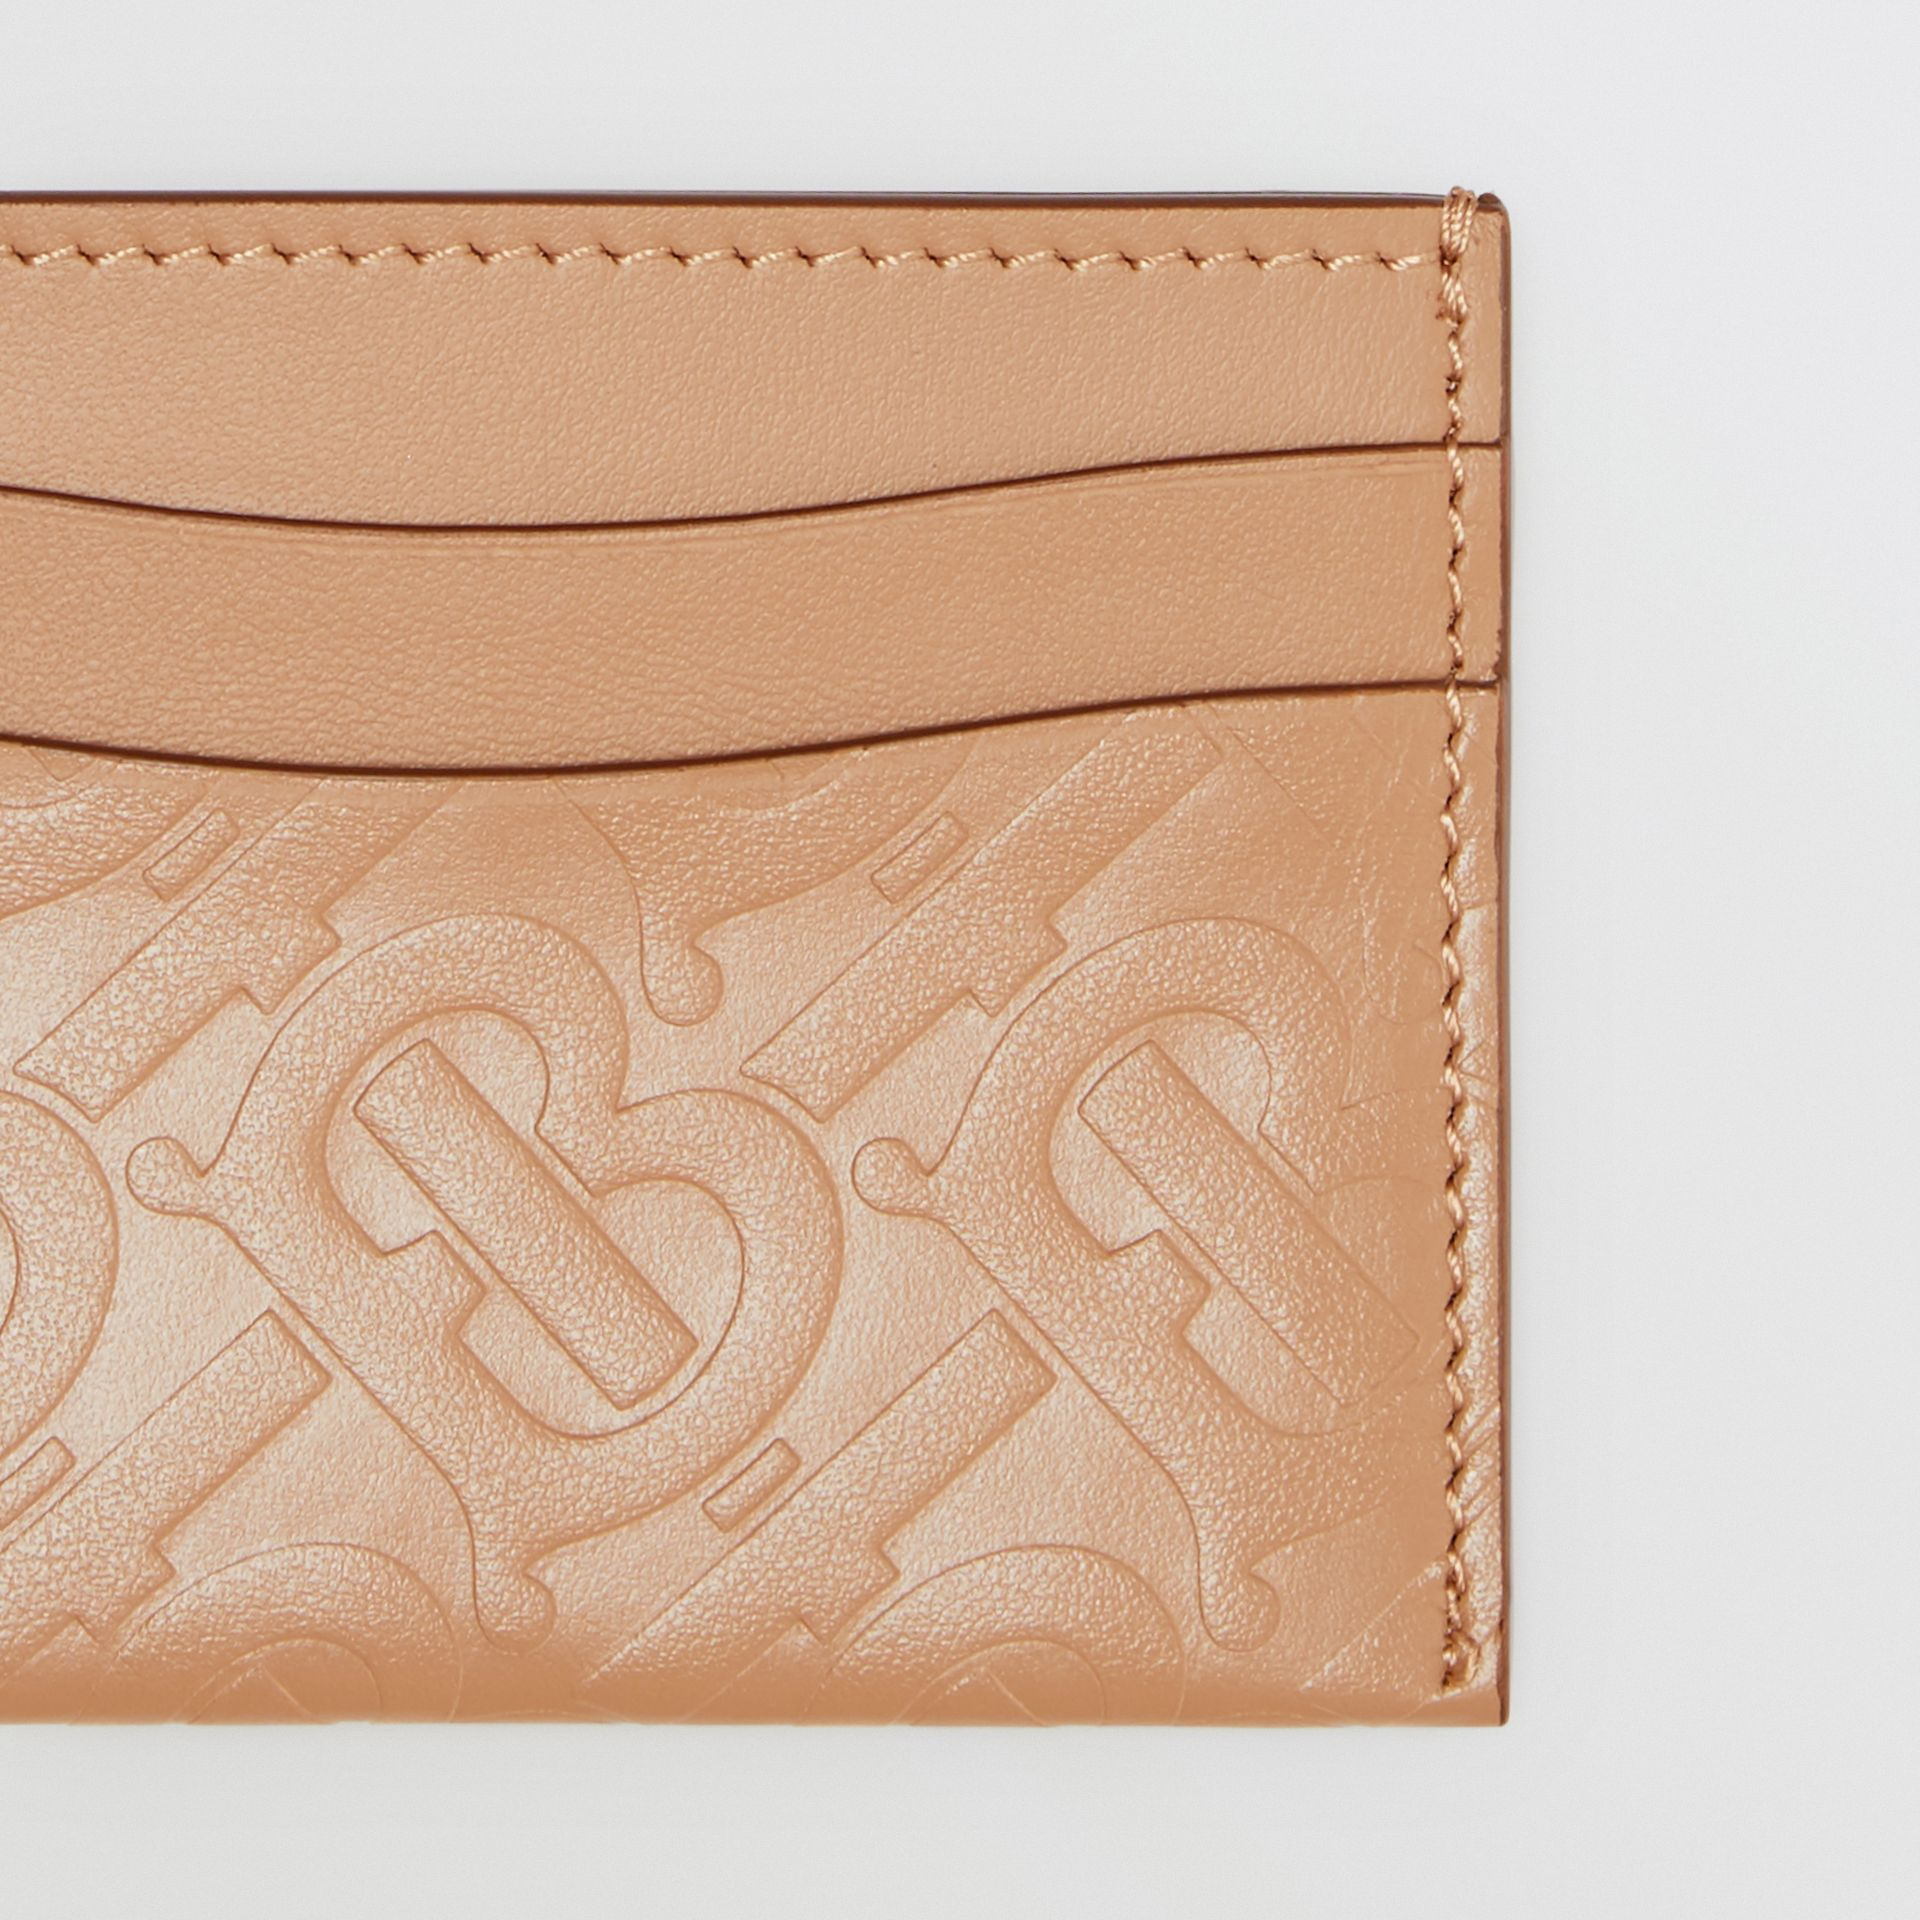 Porte-cartes en cuir Monogram (Camel Clair) - Femme | Burberry - photo de la galerie 1